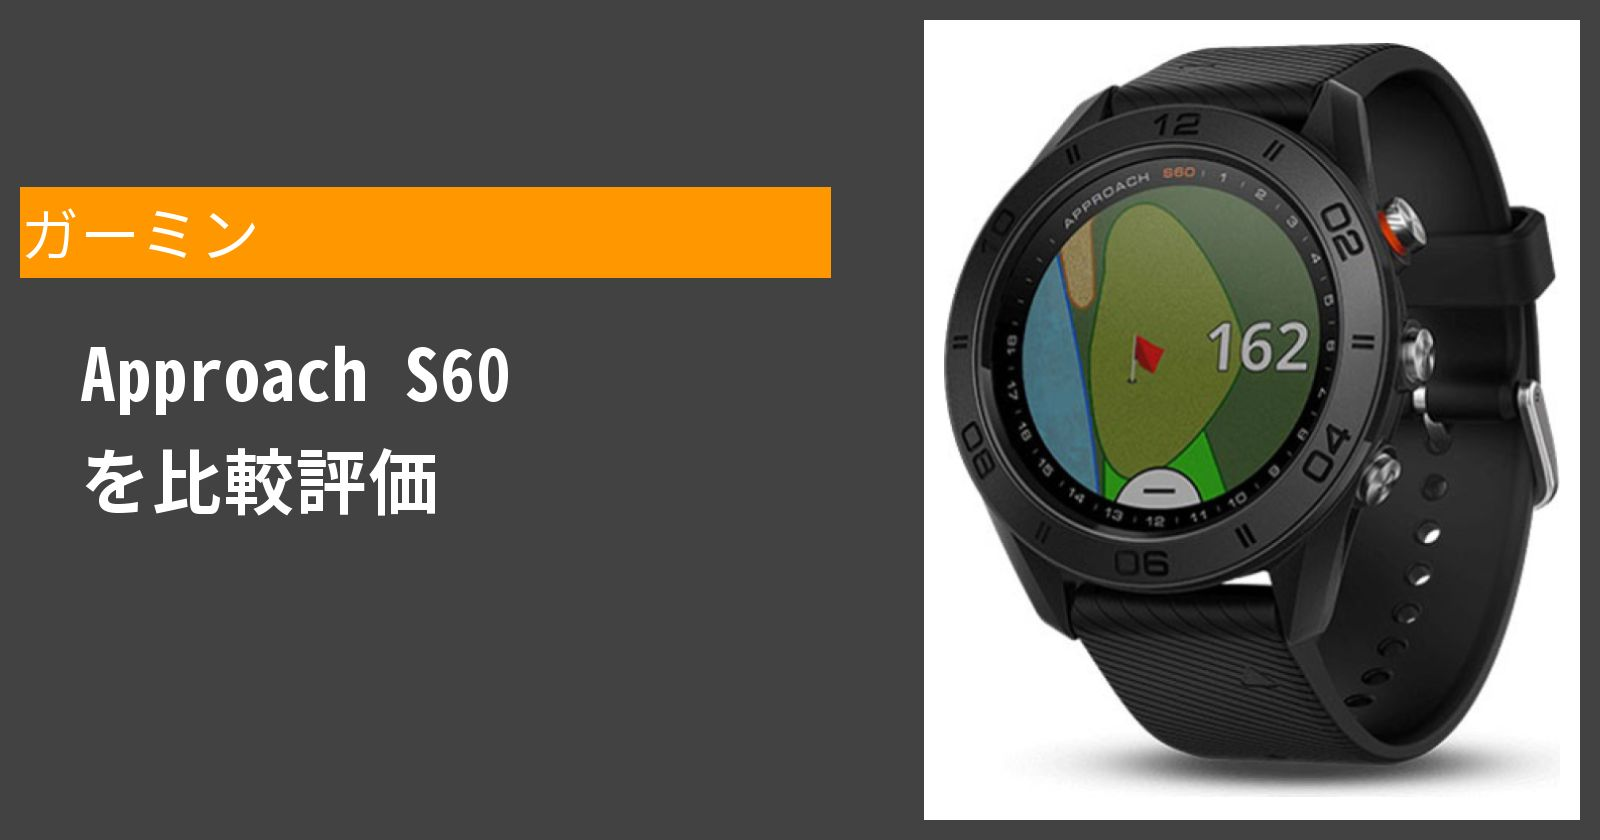 Approach S60を徹底評価